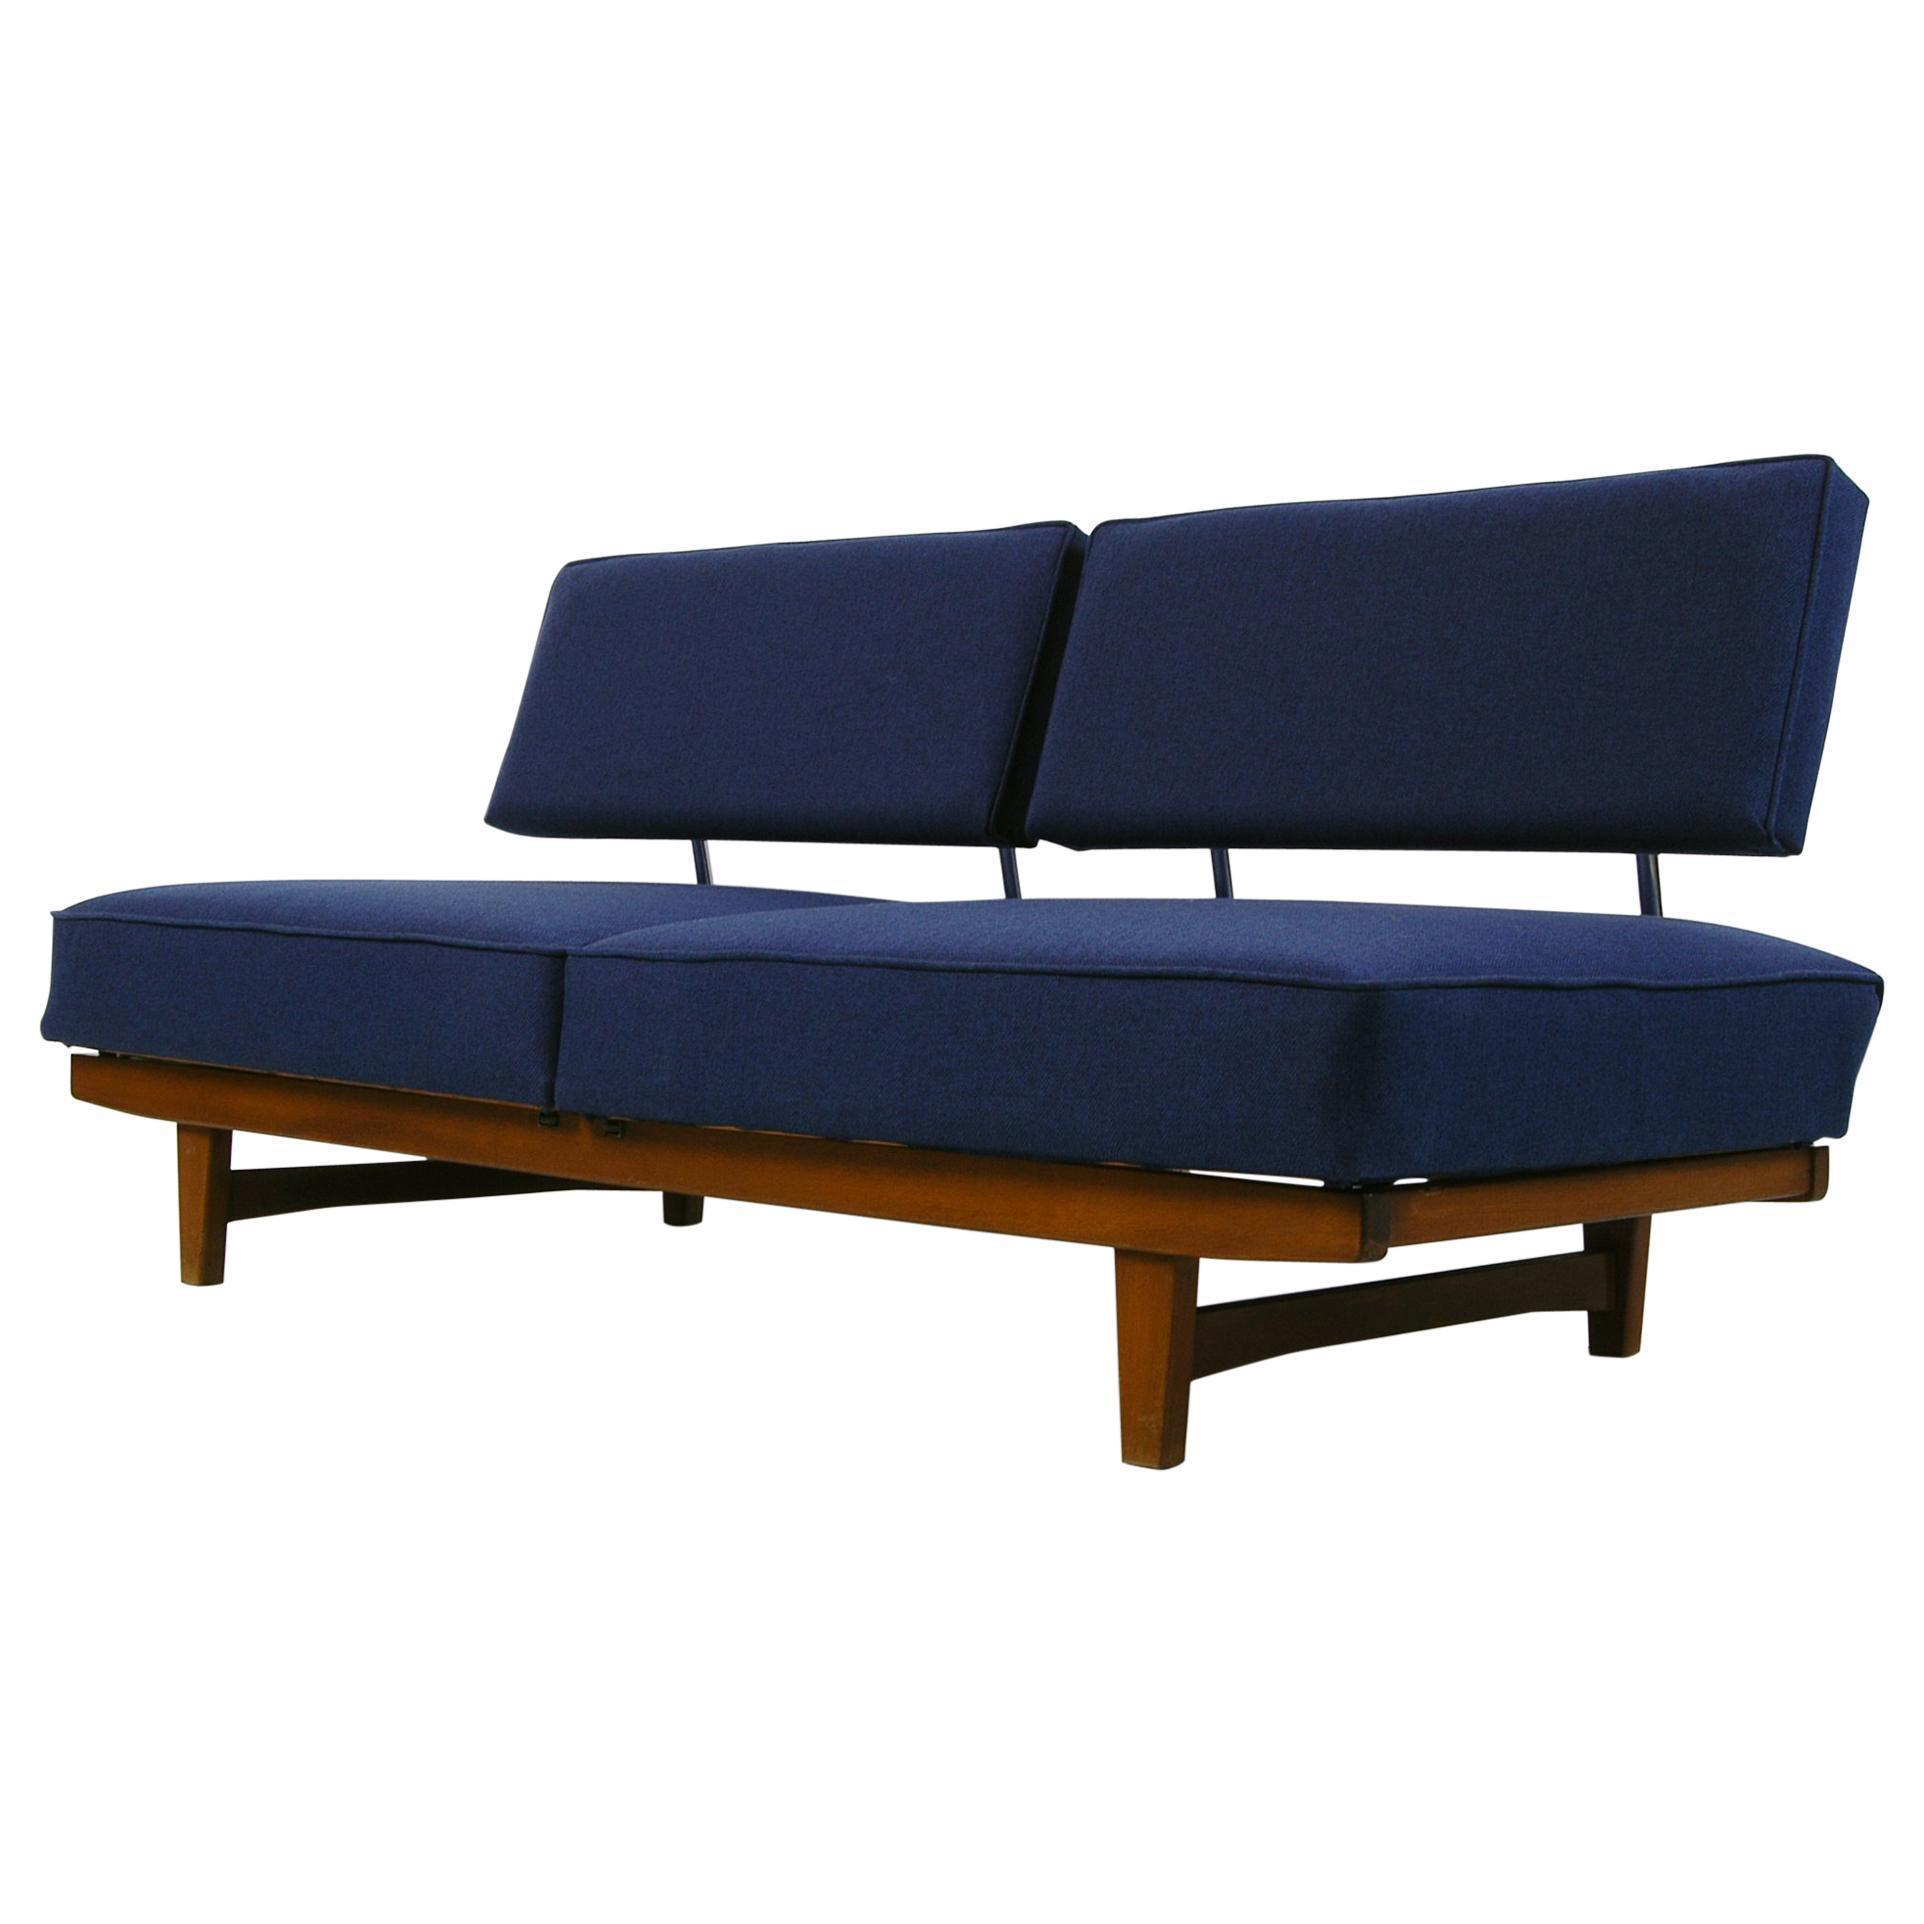 Vintage 1950s Mid Century Modern Knoll Stella Convertible Daybed Sofa Couch